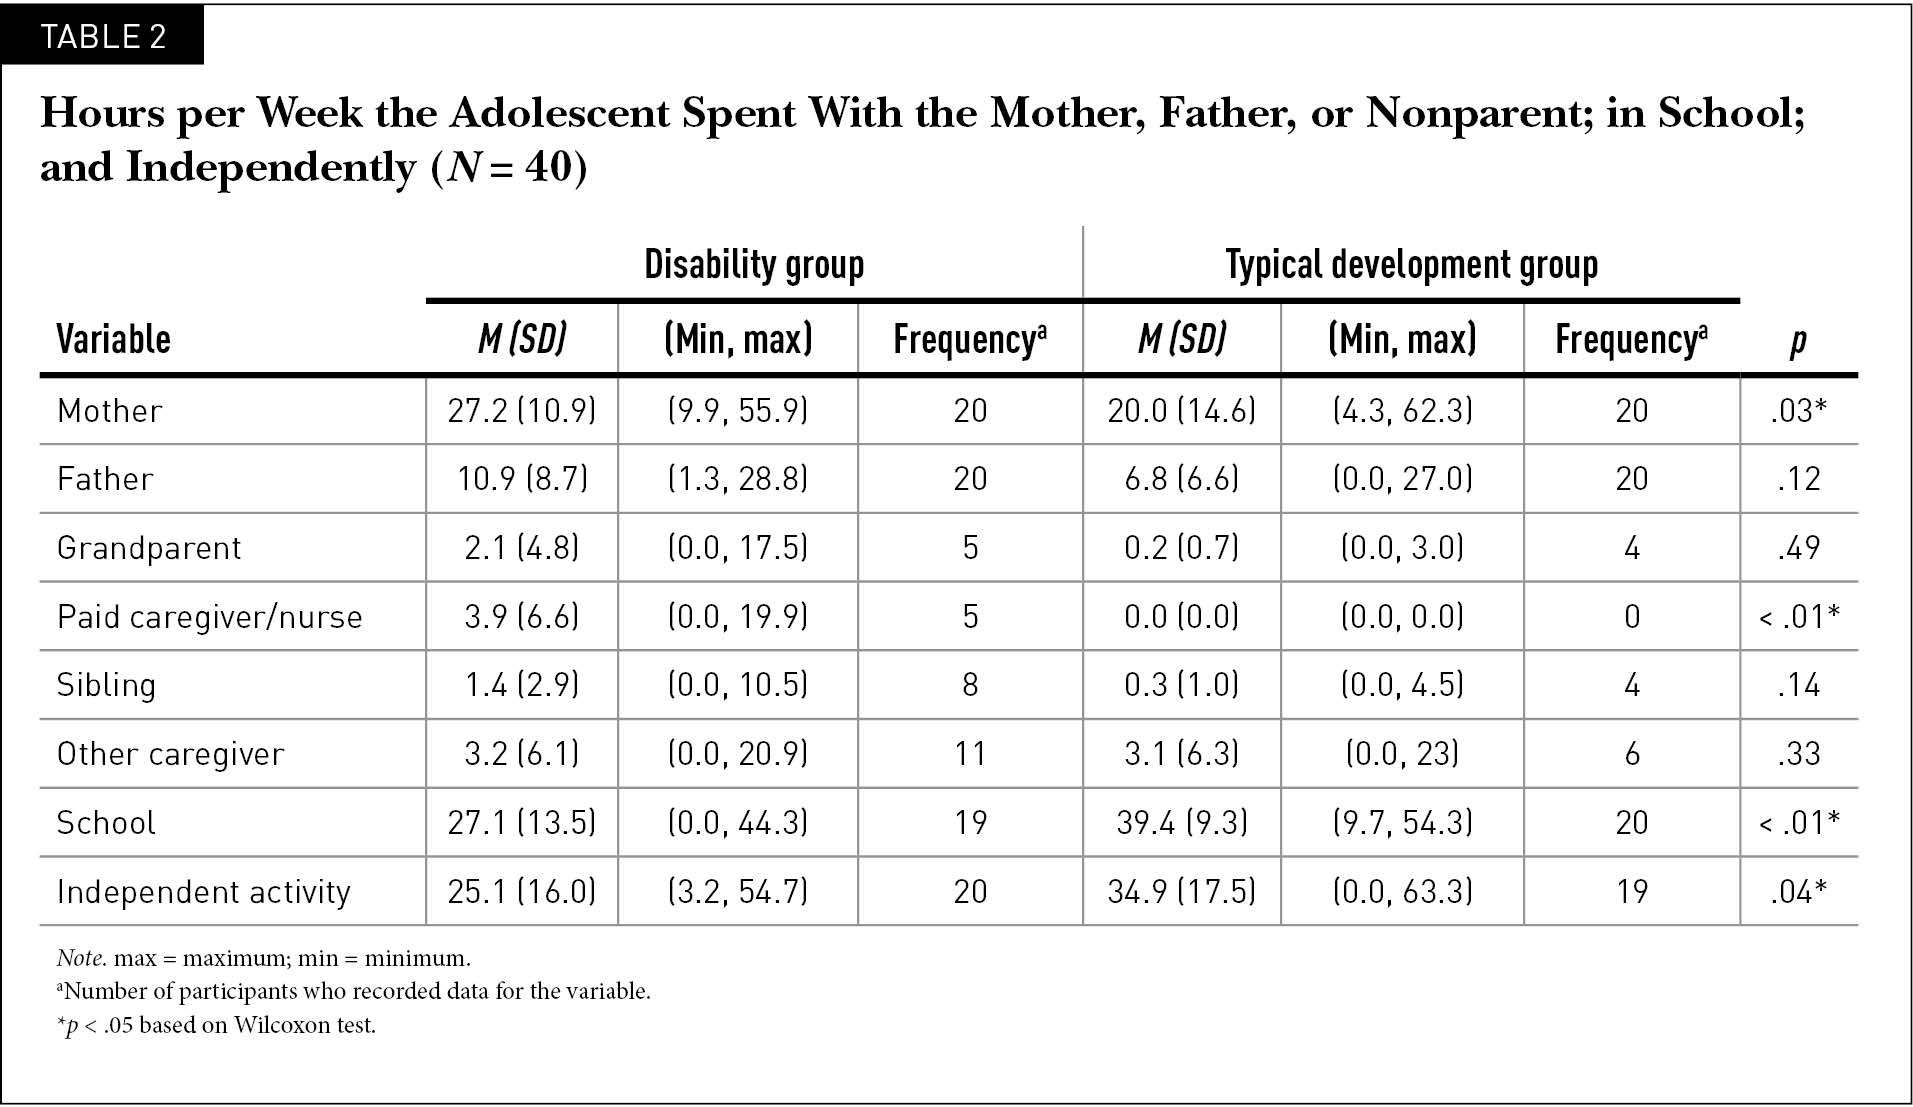 Hours per Week the Adolescent Spent With the Mother, Father, or Nonparent; in School; and Independently (N = 40)